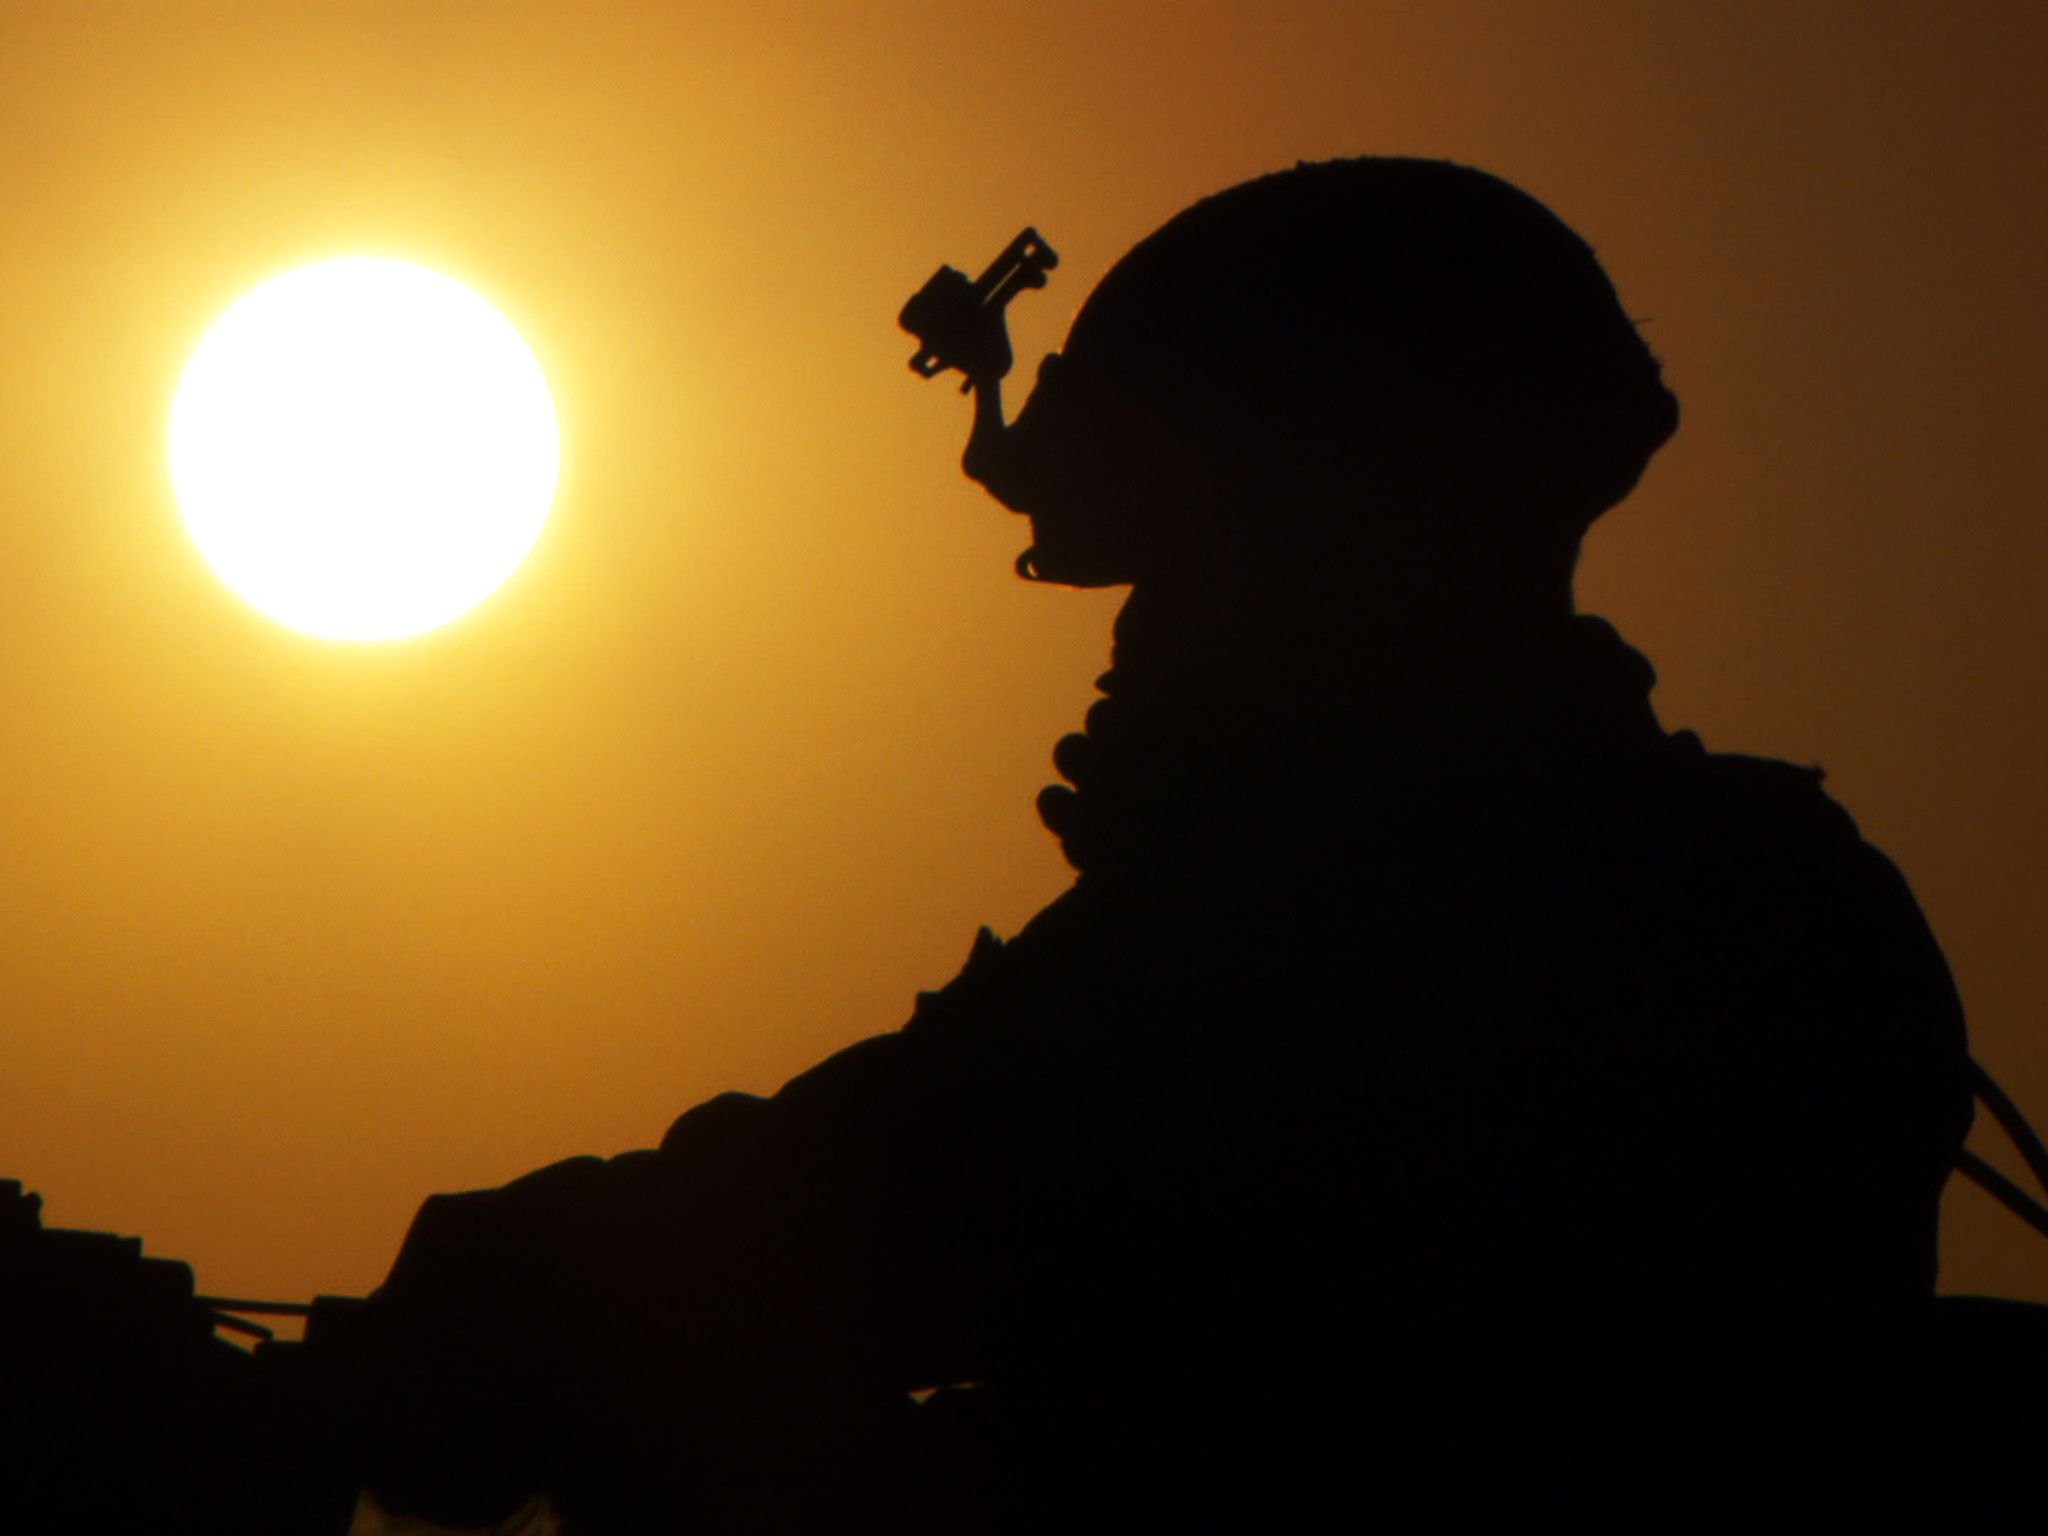 Helmand Province, Afghanistan: A silhouette of a Marine gunner and the sun in Afghanistan. This... [Photo of the day - نوامبر 2016]